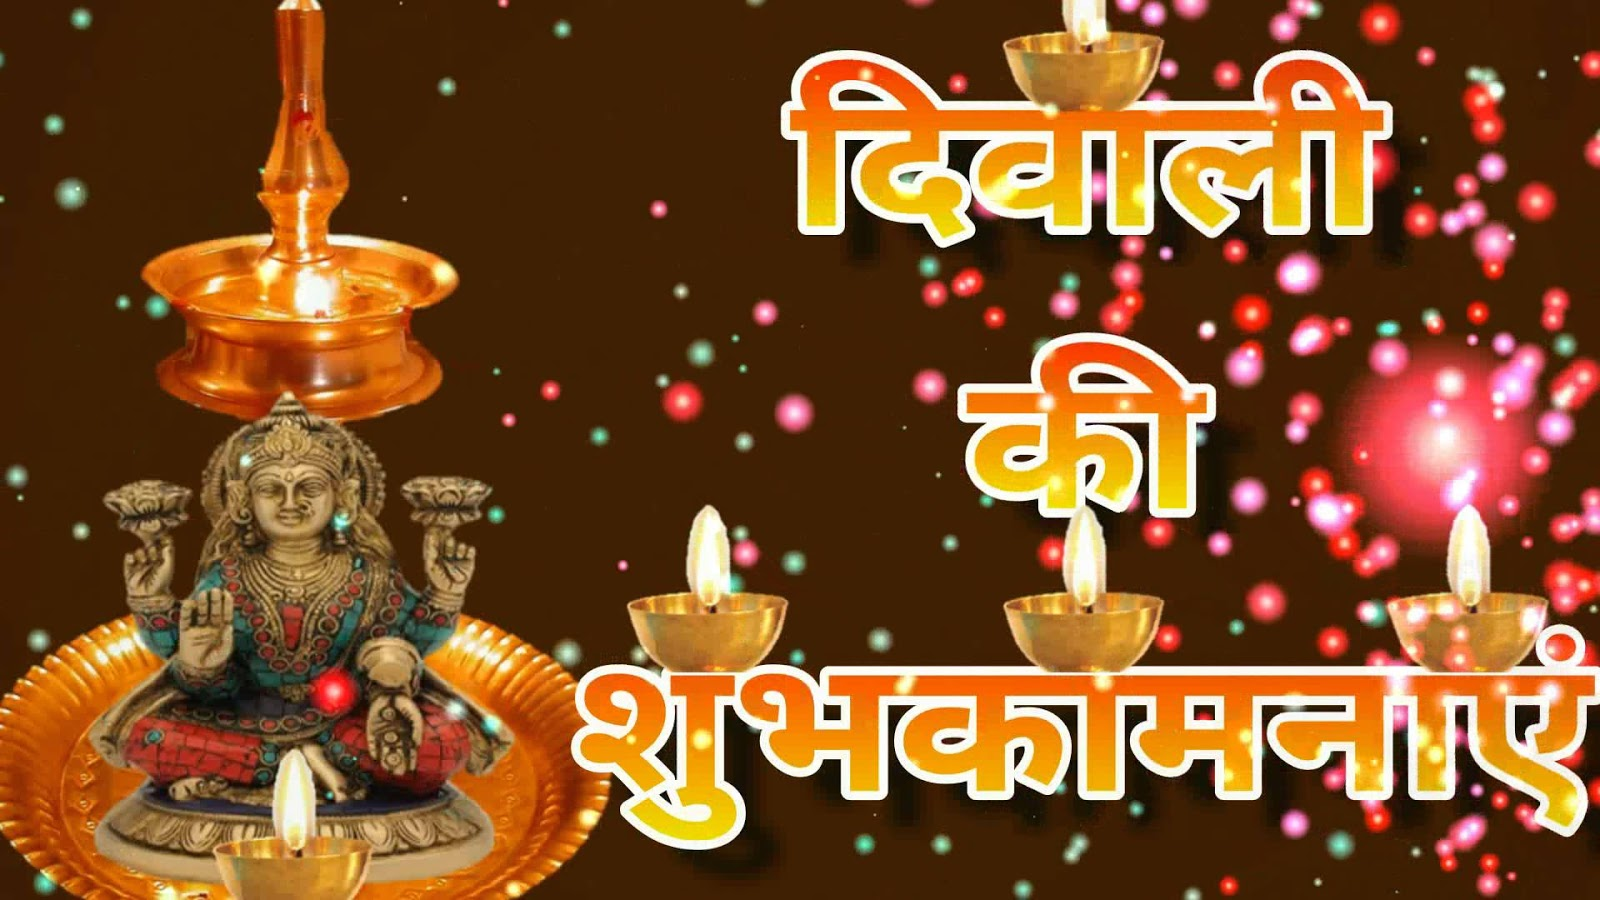 happy diwali 2018 wishes Images